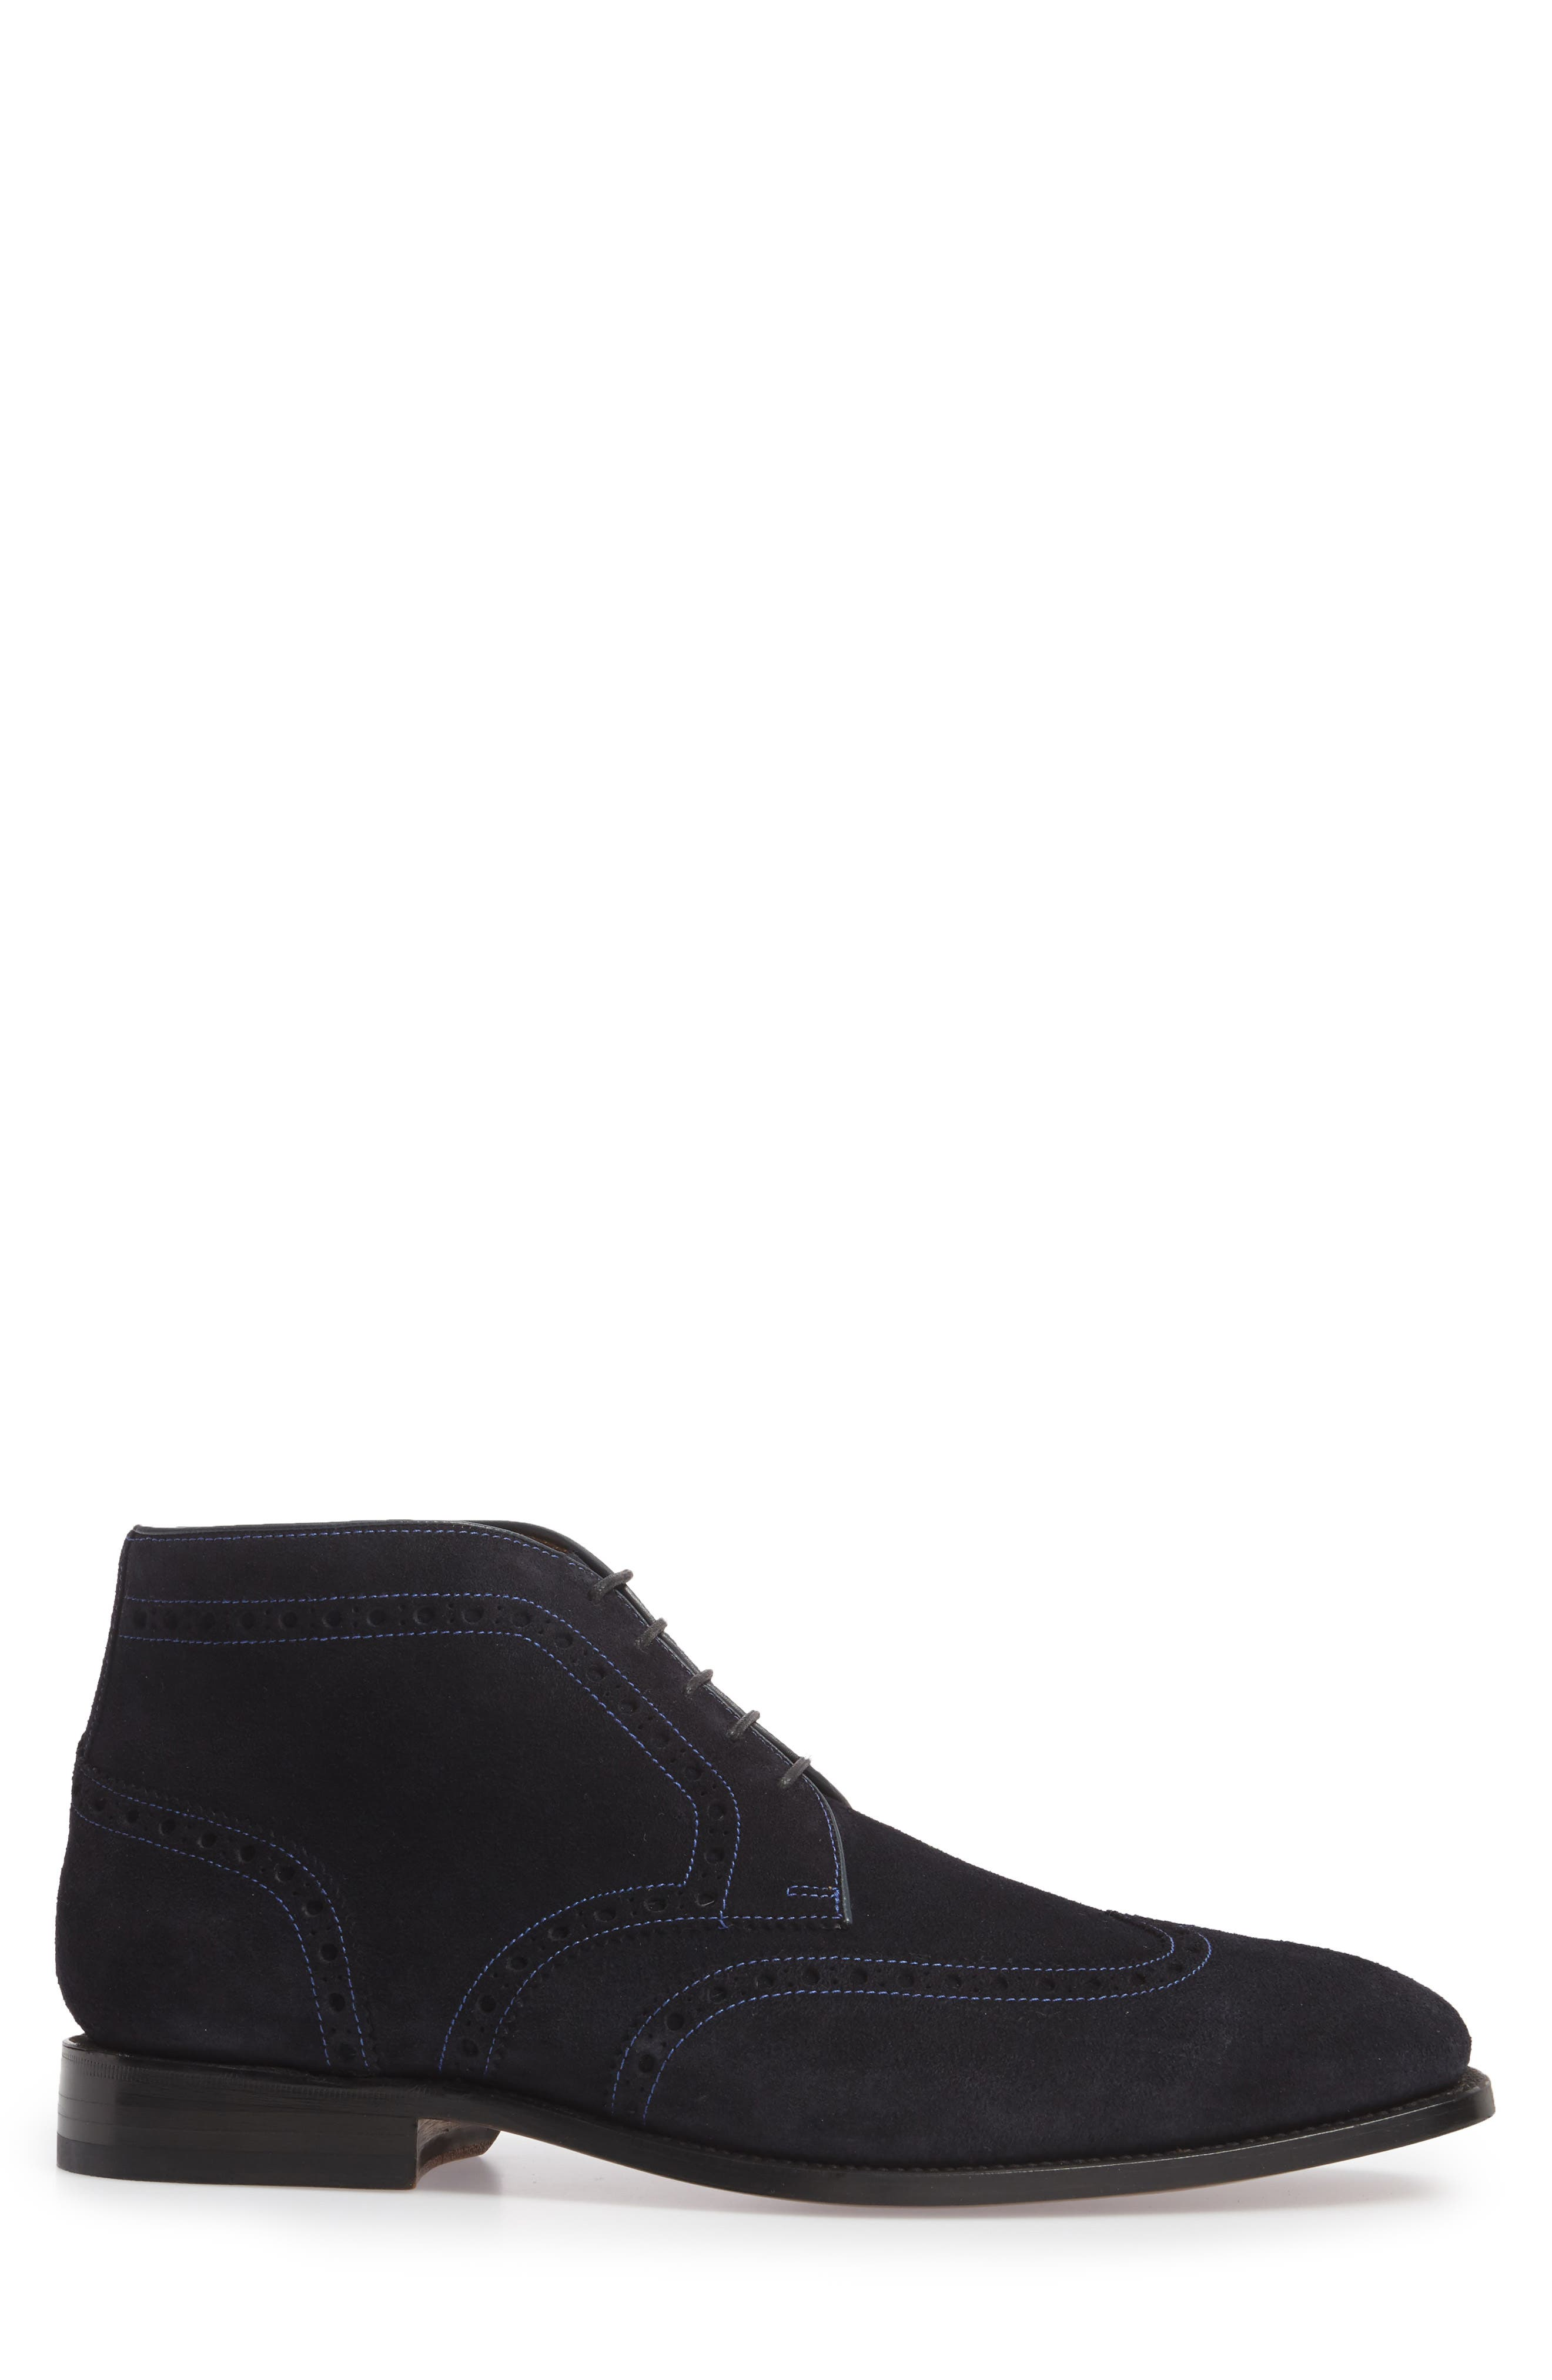 Presidio Wingtip Boot,                             Alternate thumbnail 3, color,                             NAVY